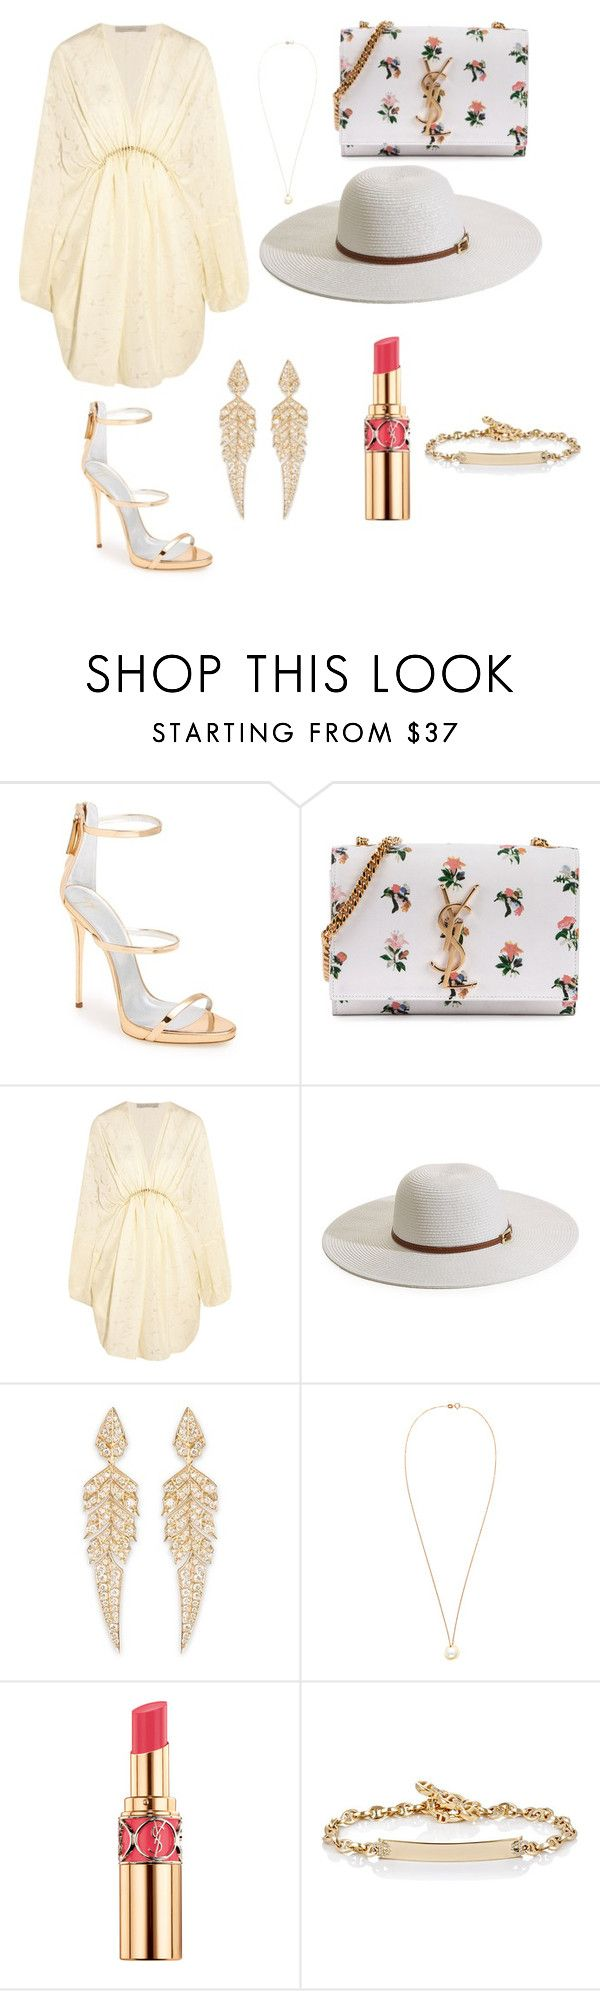 """""""Divine at the pool party"""" by carolyou ❤ liked on Polyvore featuring Giuseppe Zanotti, Yves Saint Laurent, STELLA McCARTNEY, Melissa Odabash, Stephen Webster, Hoorsenbuhs, women's clothing, women, female and woman"""